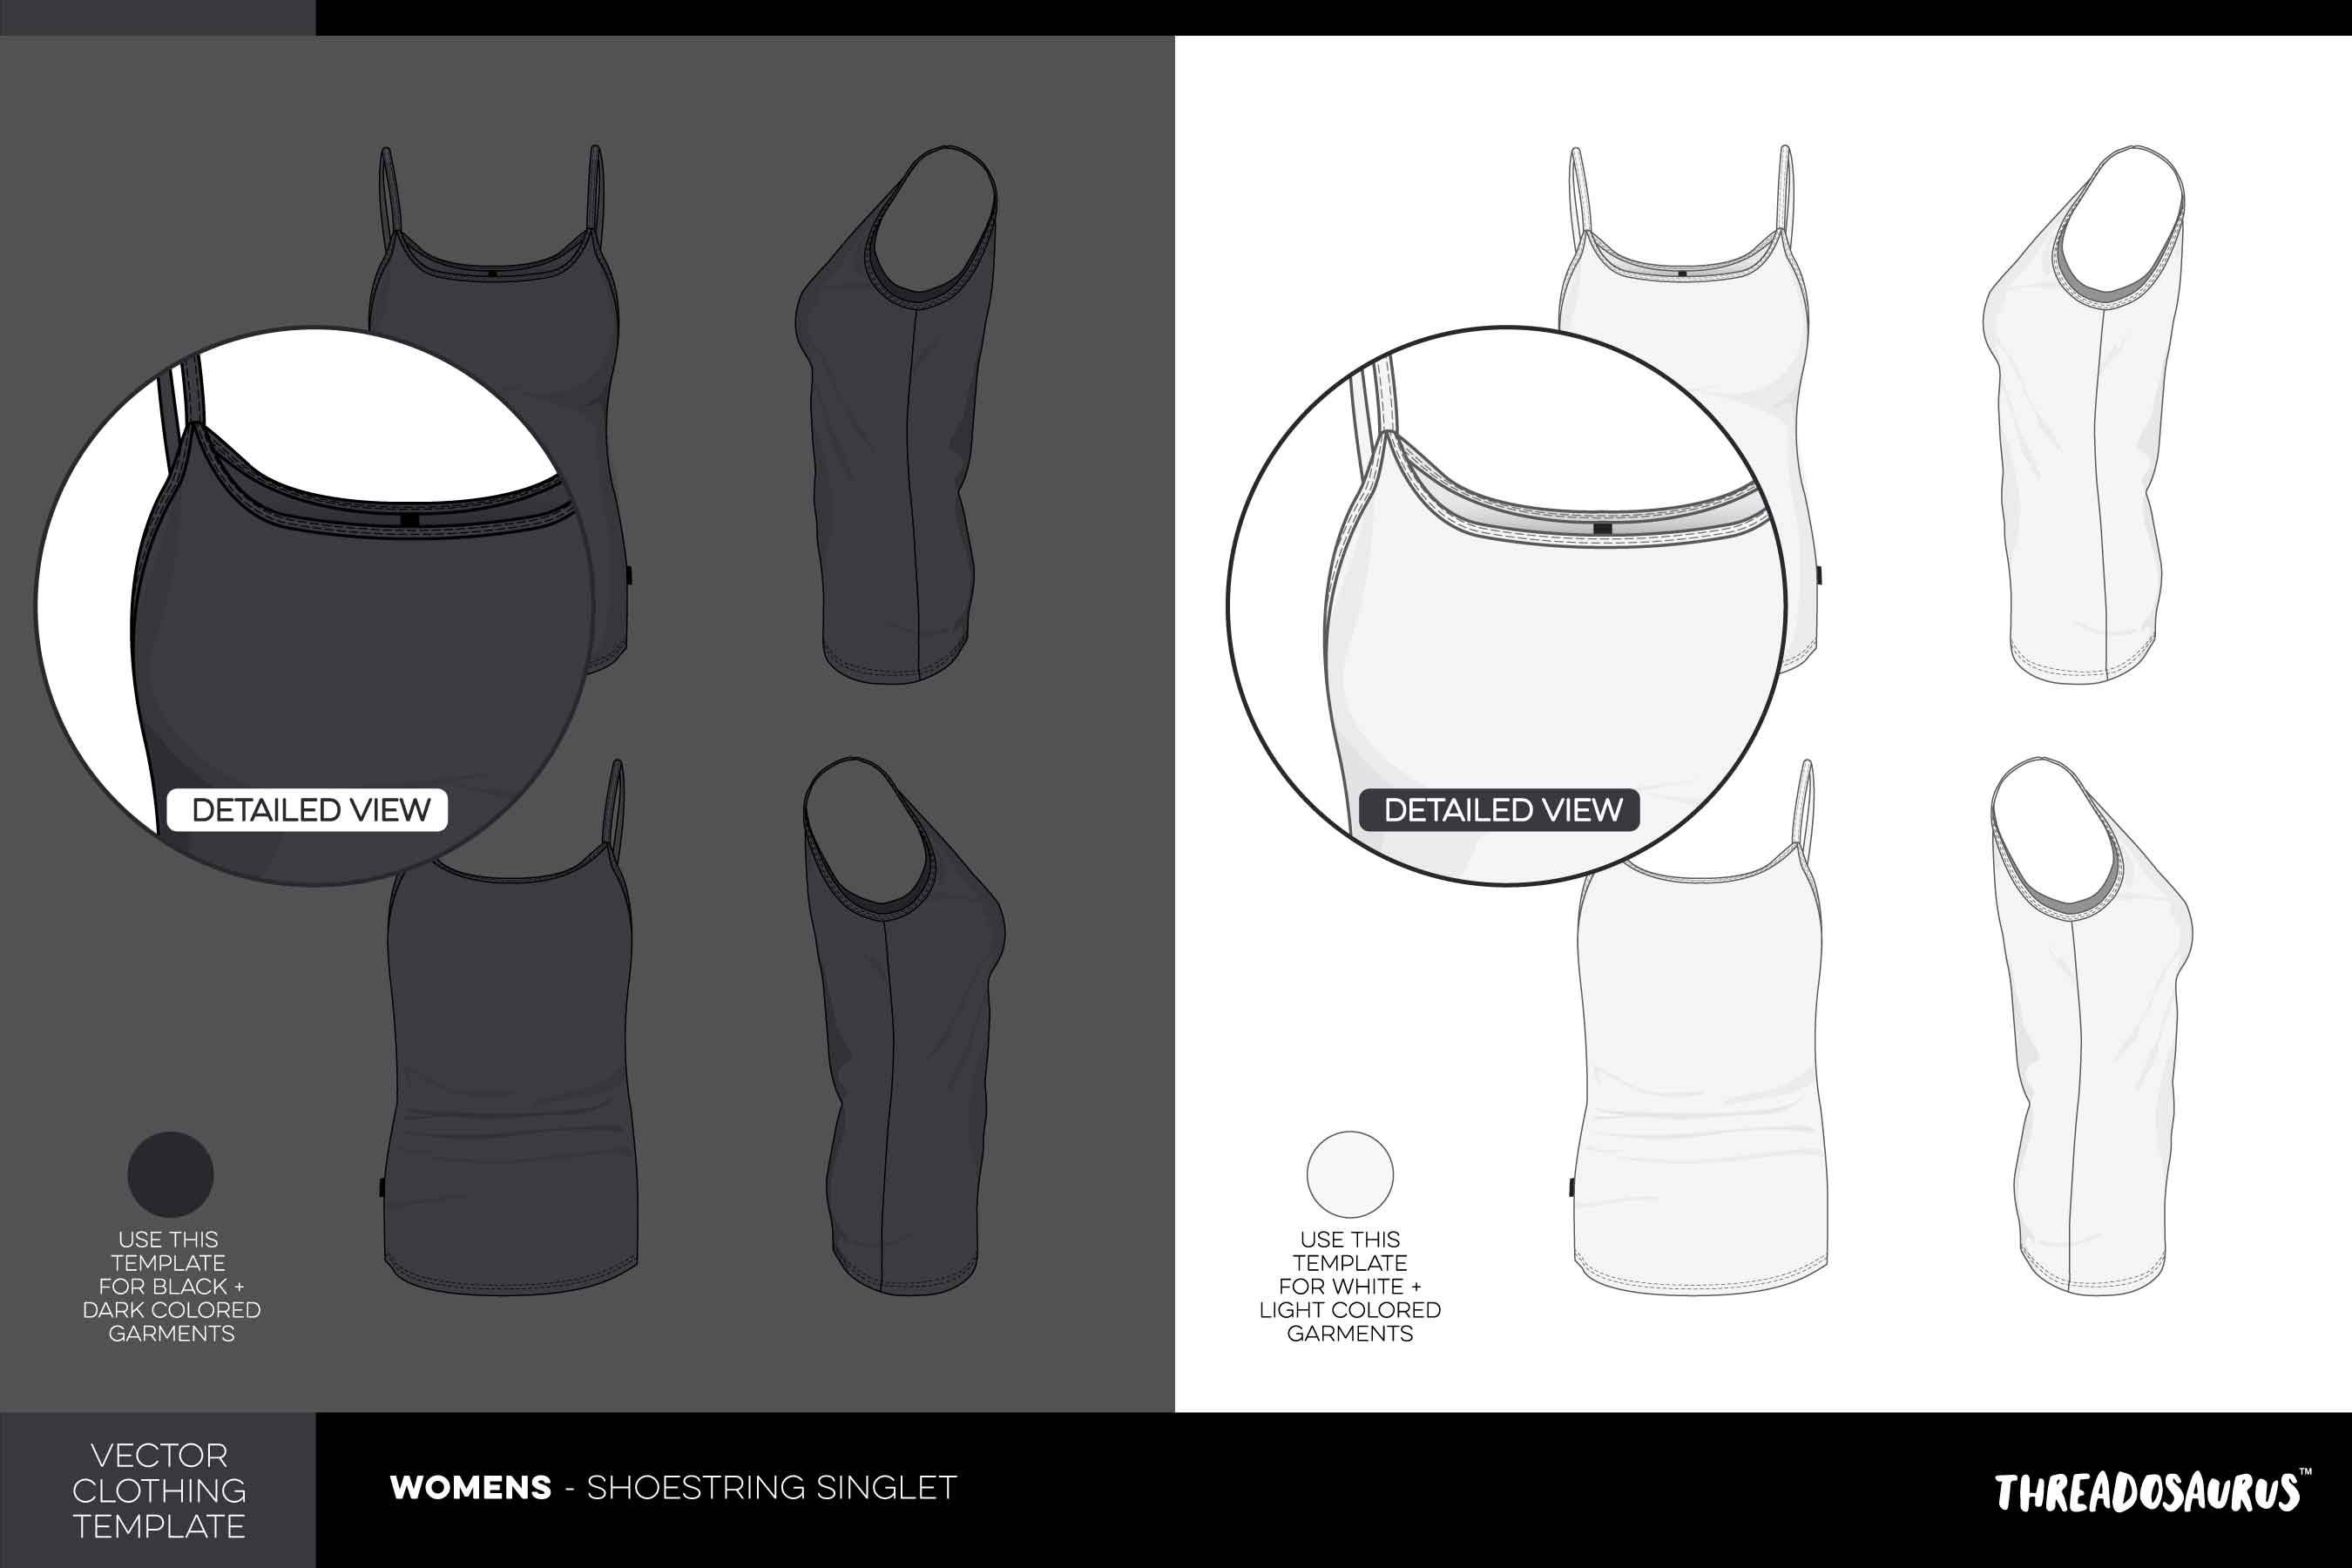 Womens Shoestring Singlet Template - Vector Pack